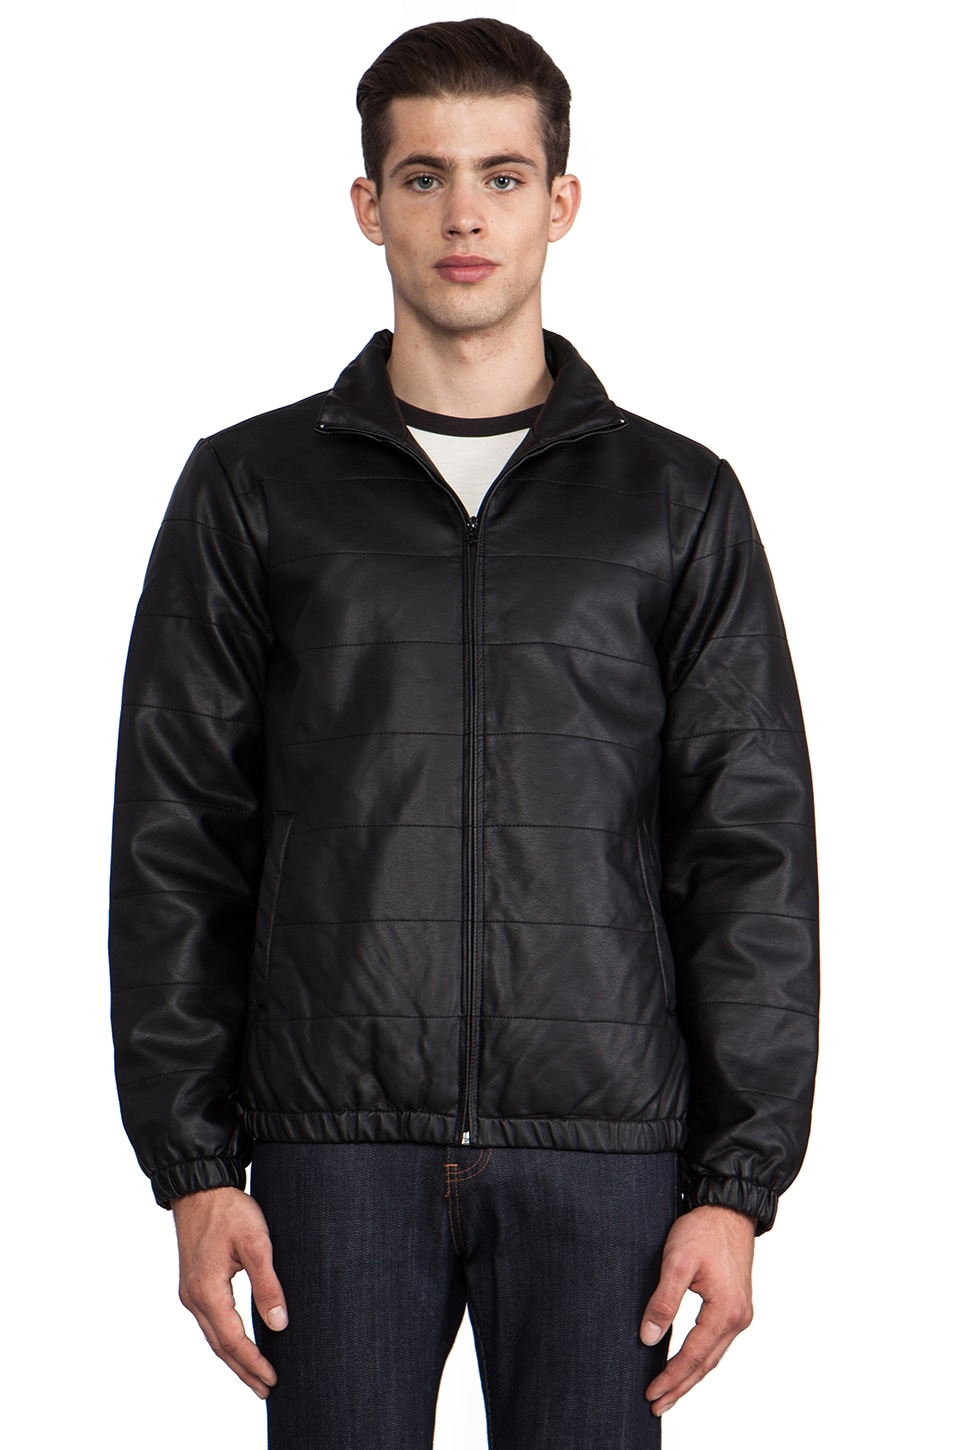 Obey Orchard Vegan Leather Jacket in Black